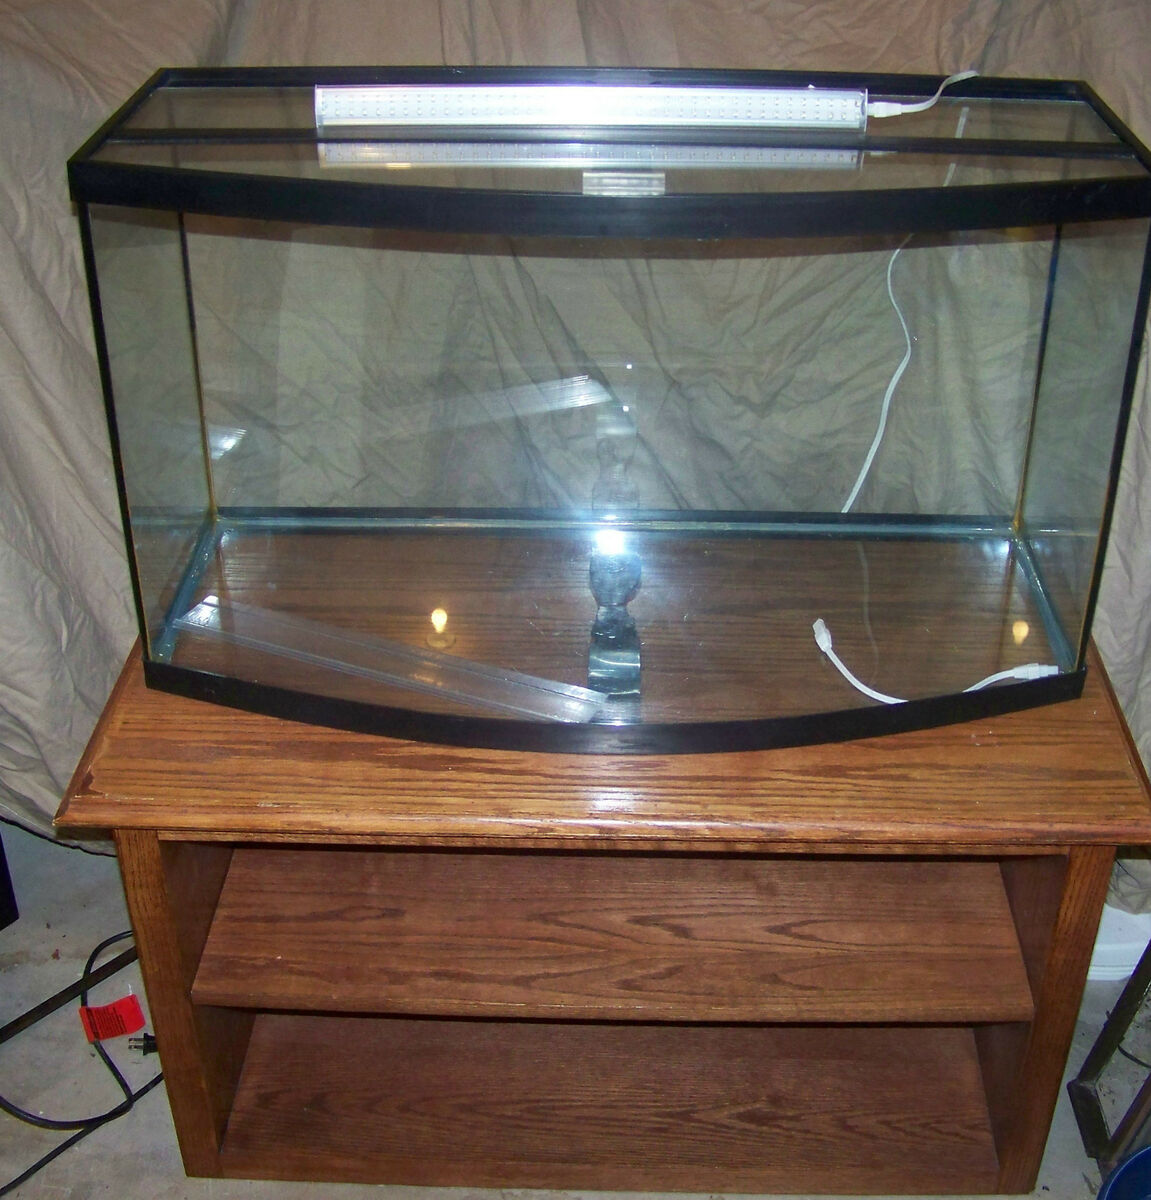 100 gallon fish tank bow front 100 gallon bow front Thirty gallon fish tank